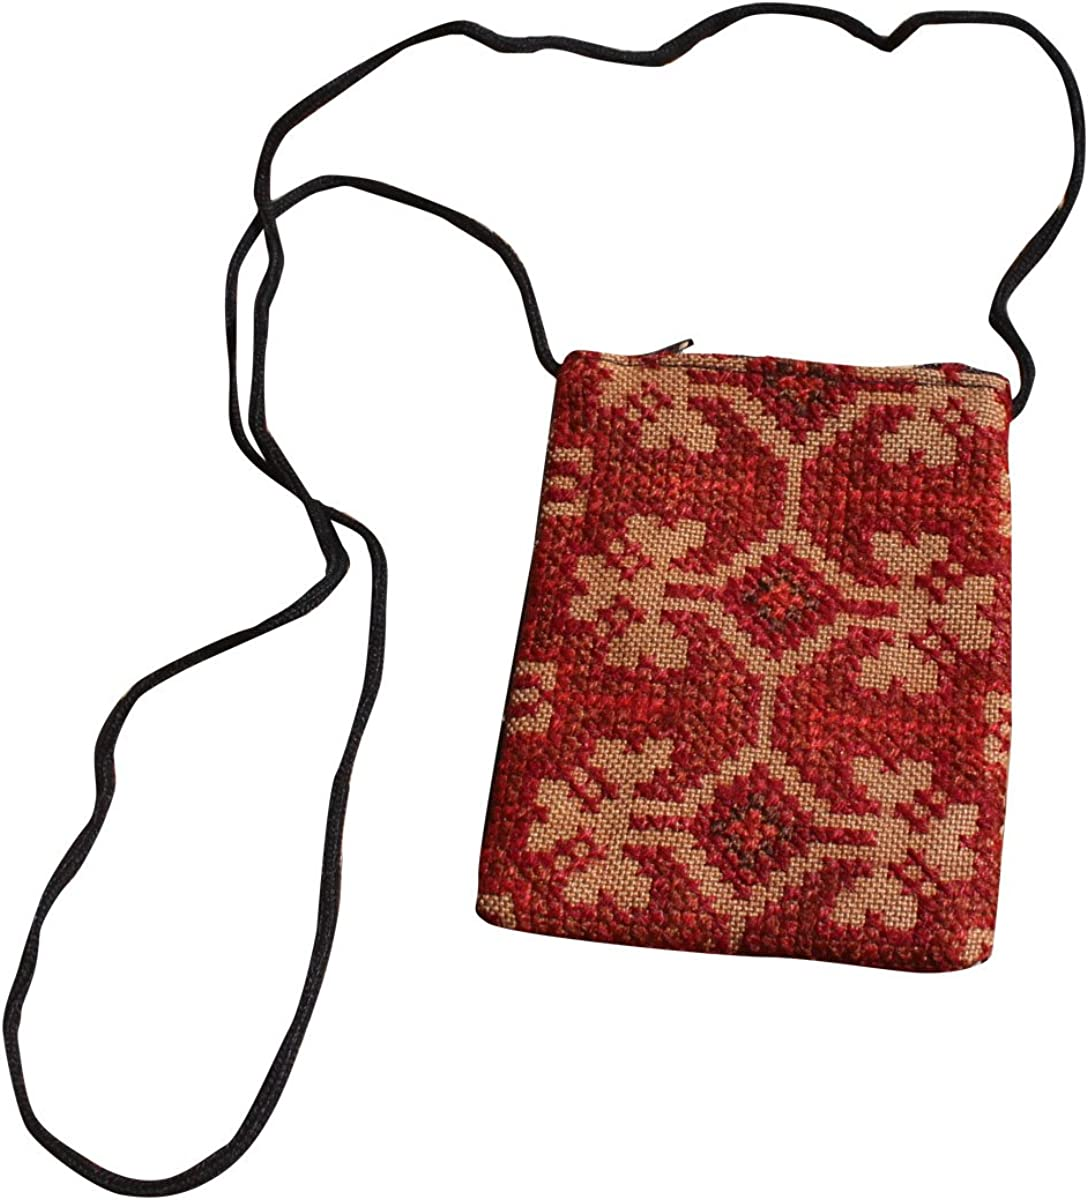 Full Funk Hill Tribe Stitched Mobile Phone Square Bag Pouch with Strap